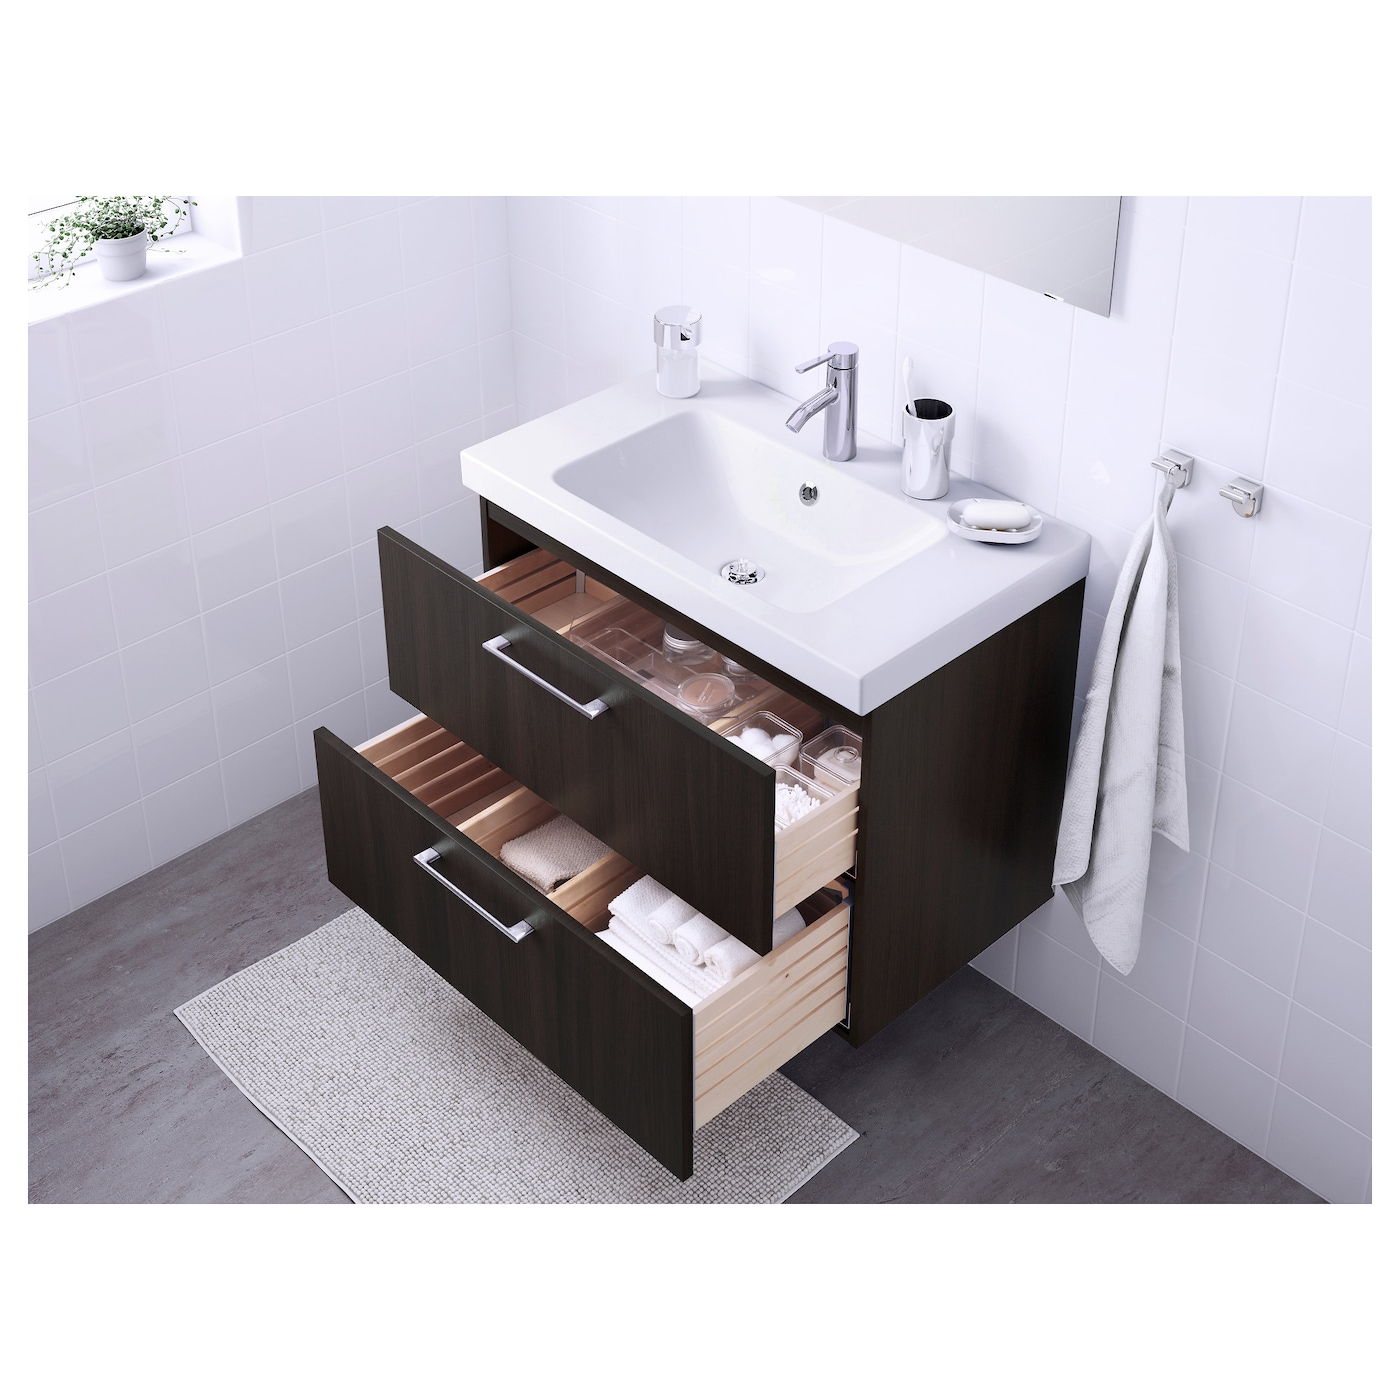 br viken godmorgon wash stand with 2 drawers white 60x49x68 cm ikea. Black Bedroom Furniture Sets. Home Design Ideas